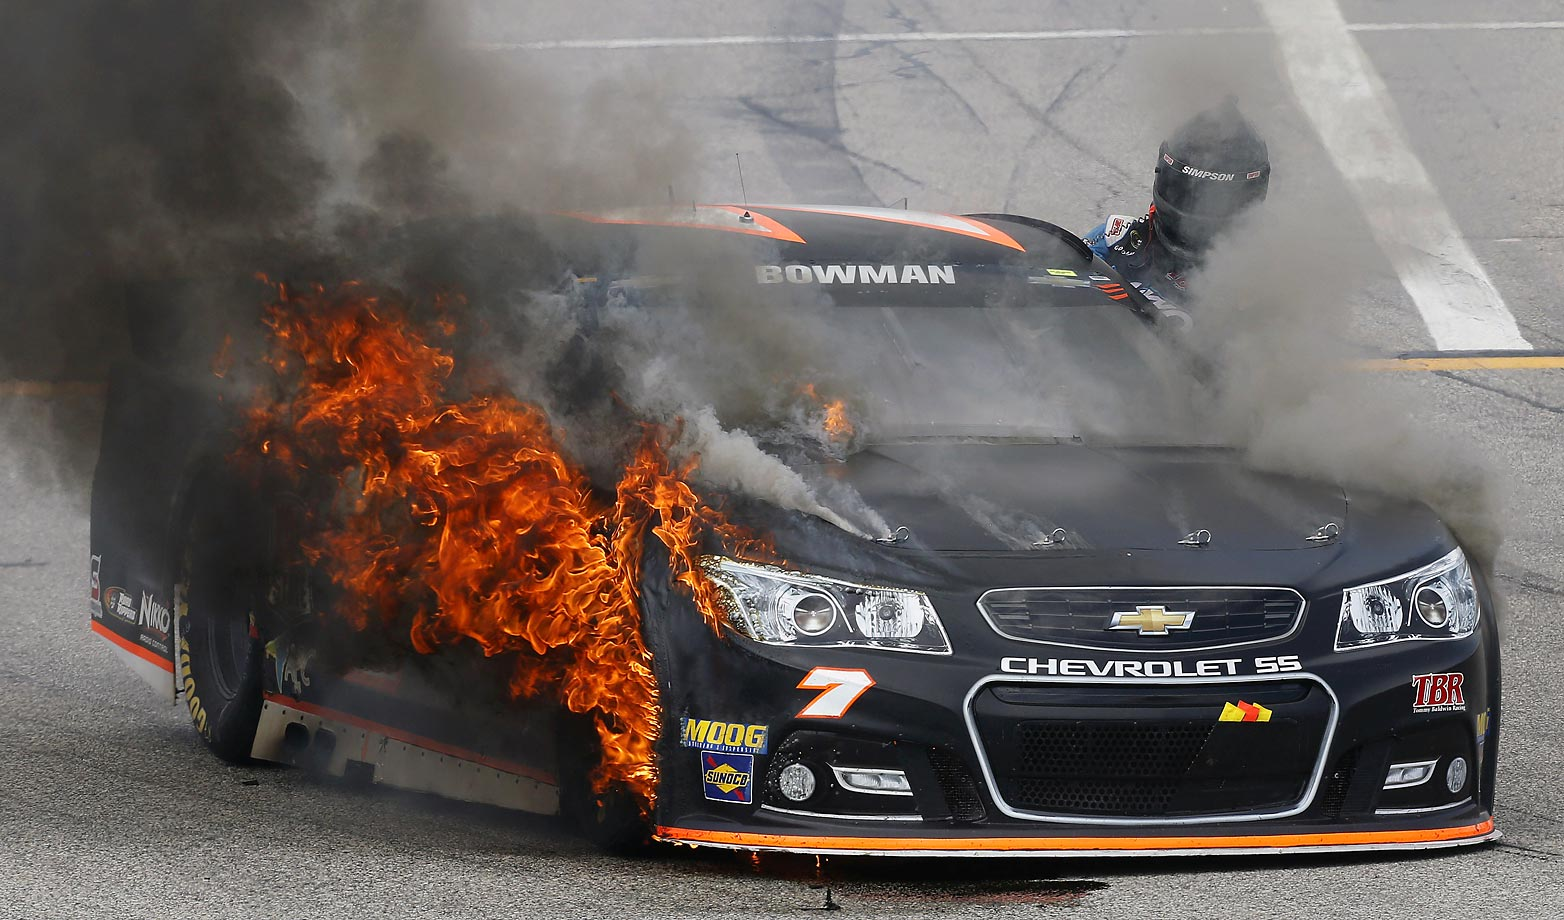 Alex Bowman climbs out of his burning car at the New Hampshire Motor Speedway.